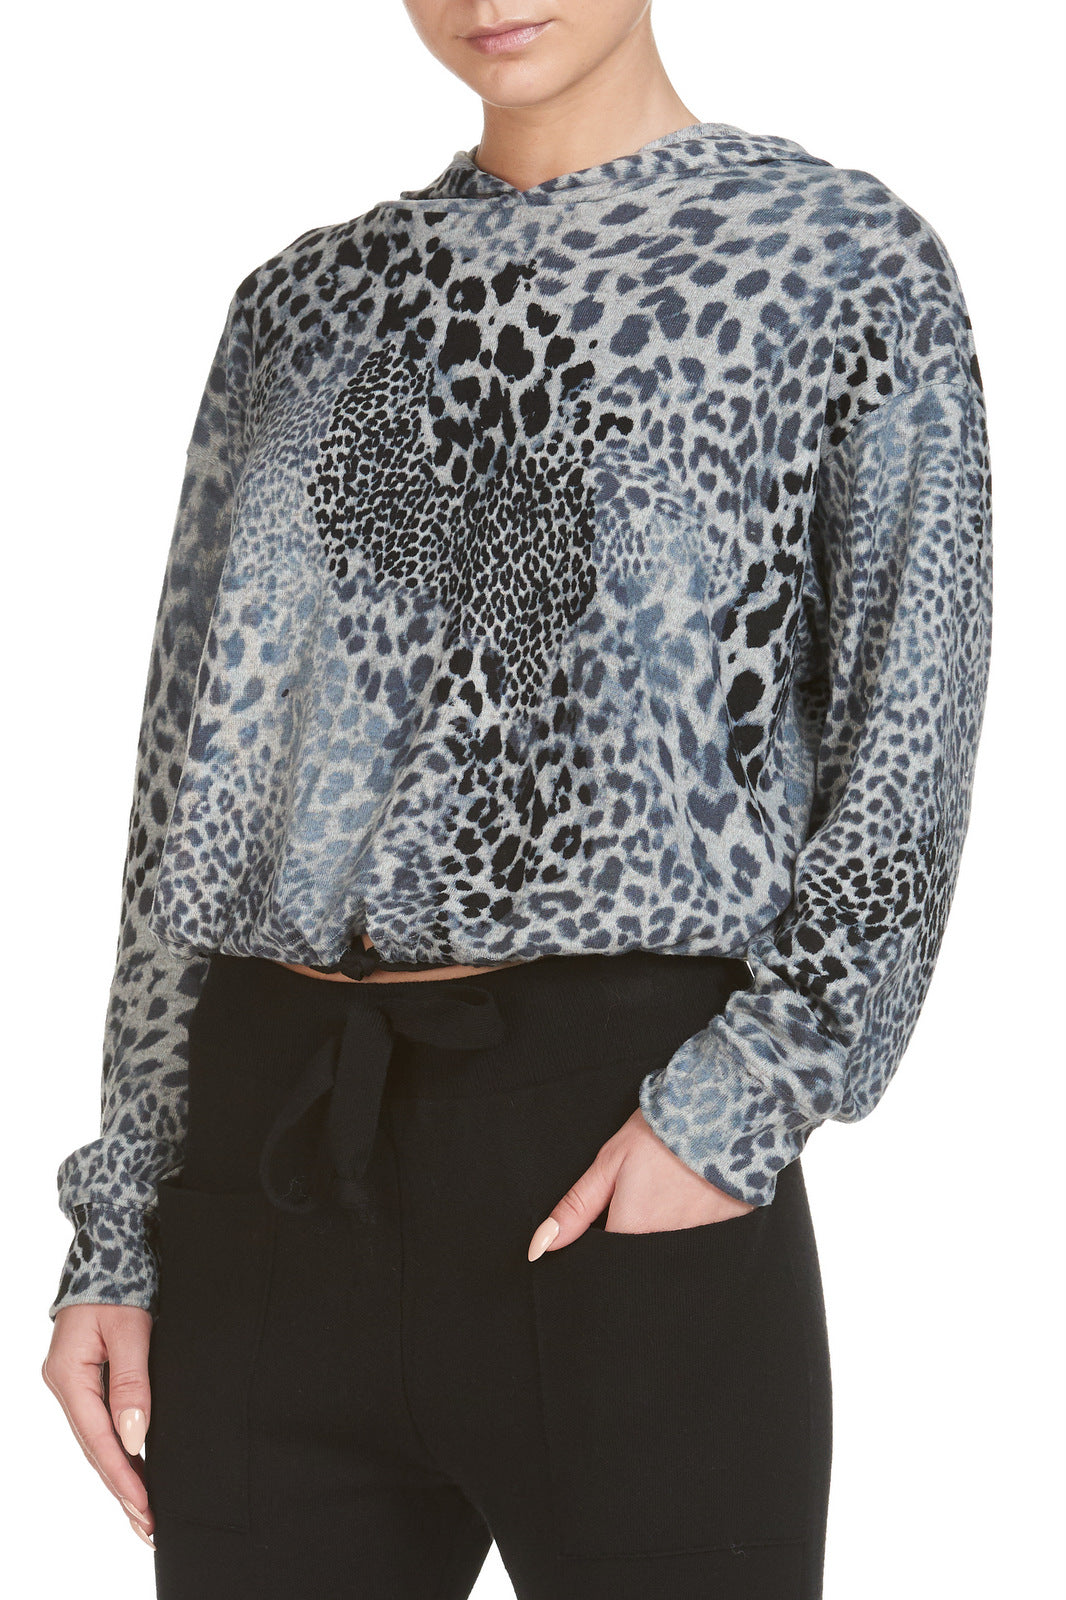 Leopard Hooded Sweatshirt with Tie Waist